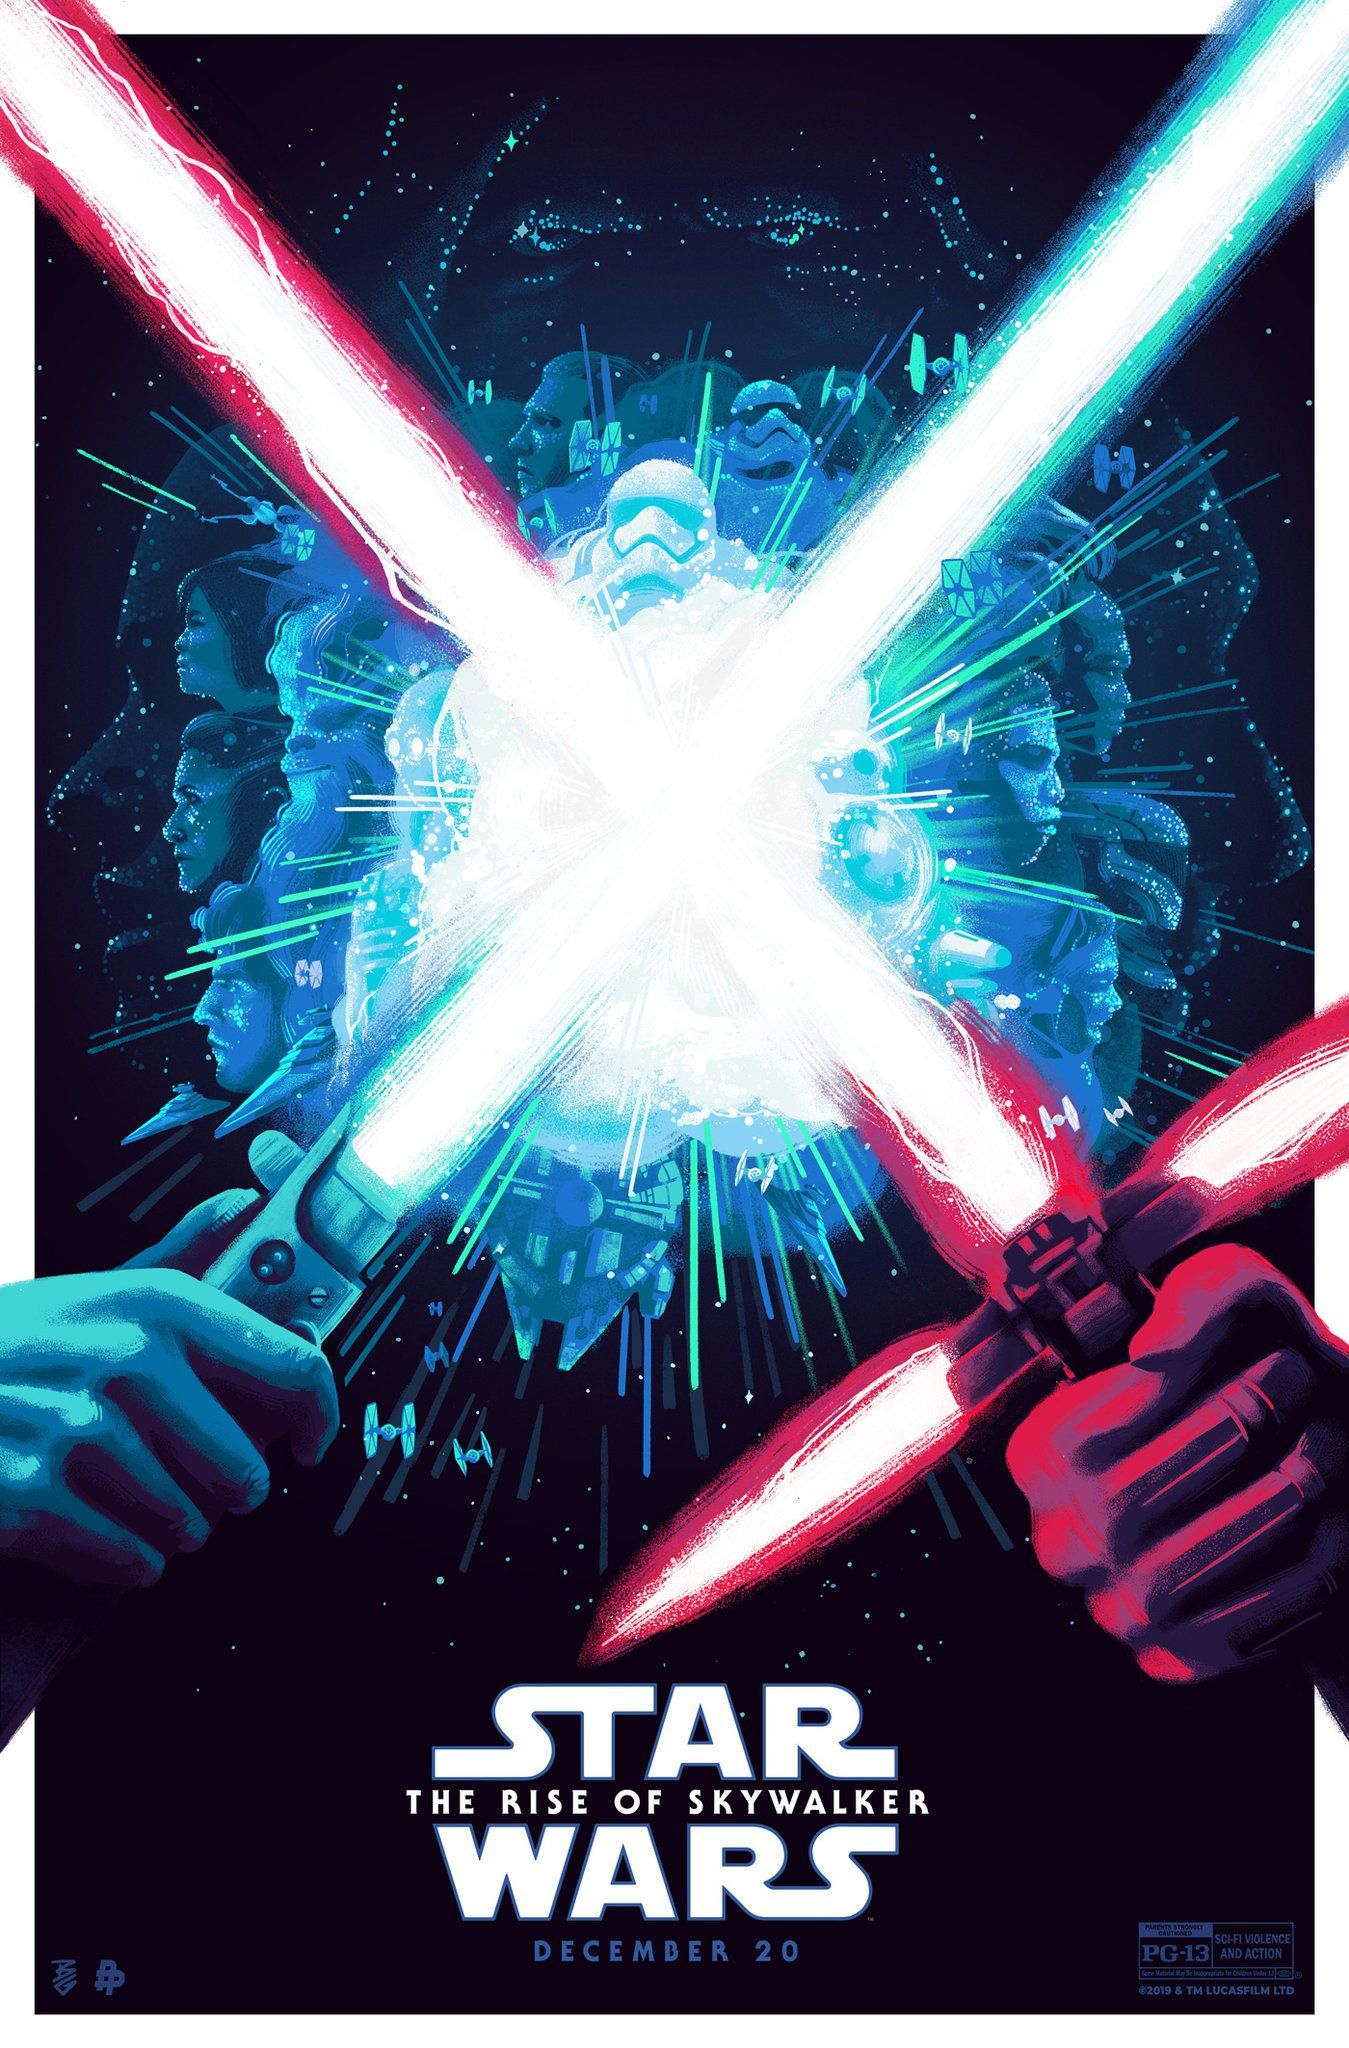 Pin By New Order On Star Wars Posters In 2020 Star Wars Watch Star Wars Poster Star Wars Uk